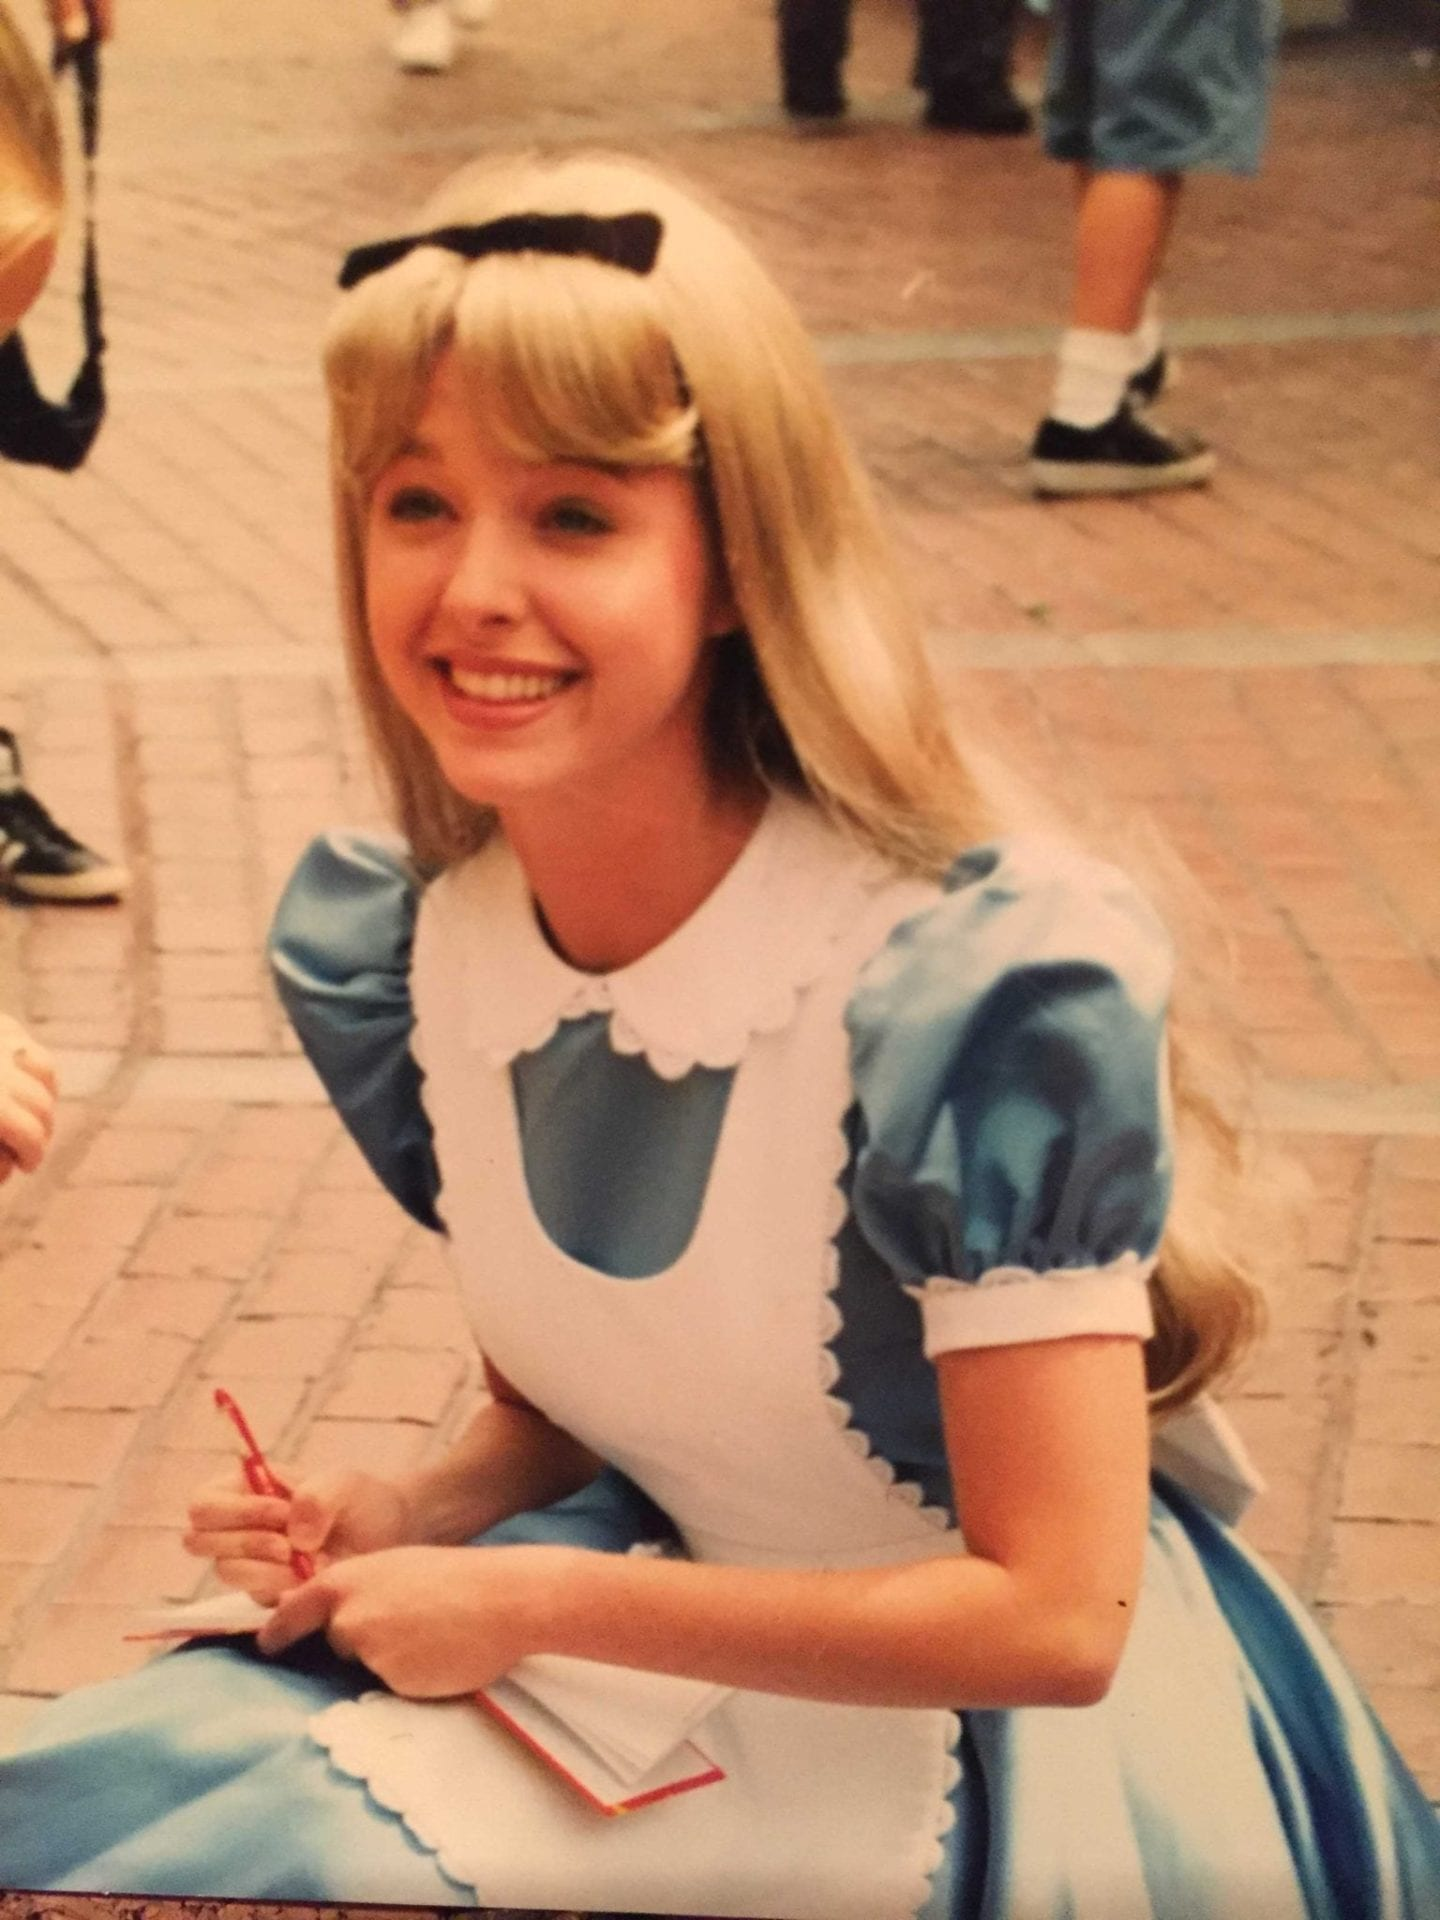 Alice in Wonderland at Magic Kingdom. Disney tips and tricks for serving